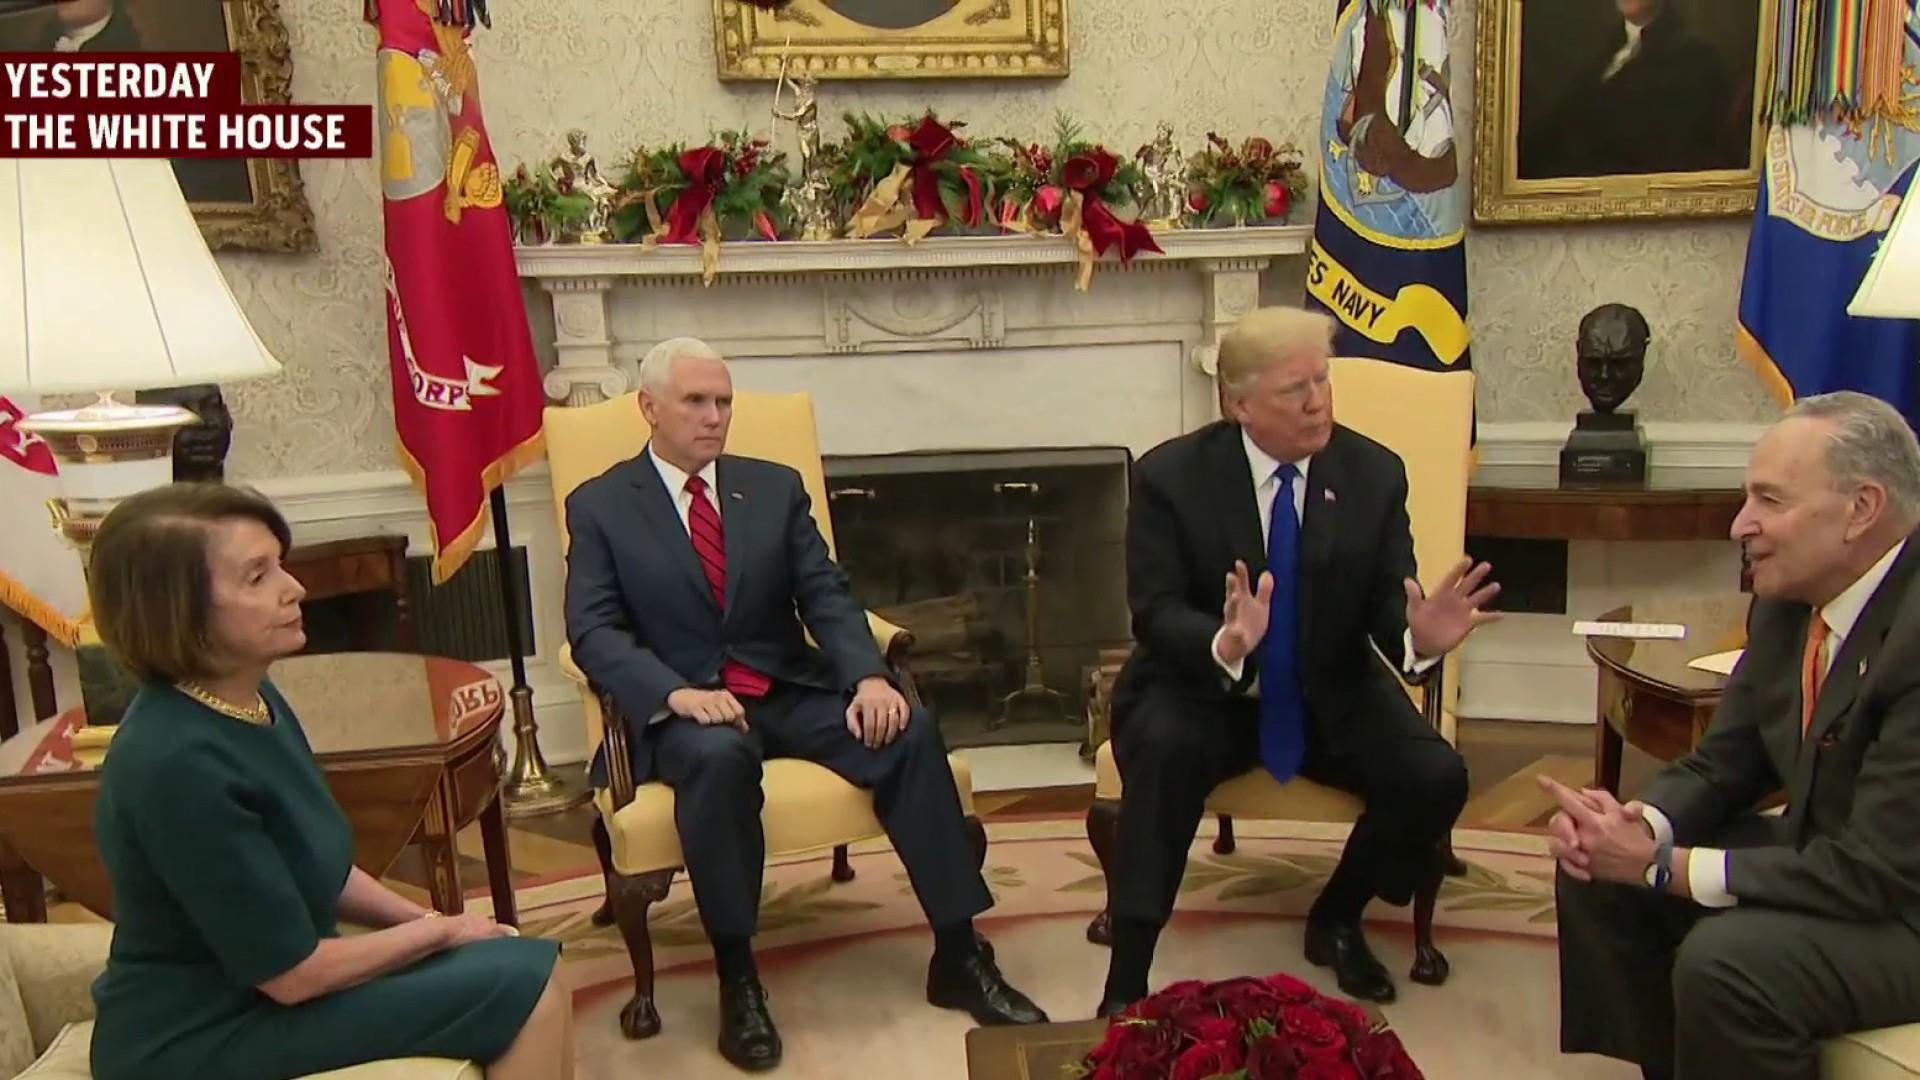 Joe: Trump gives high ground away to Democrats